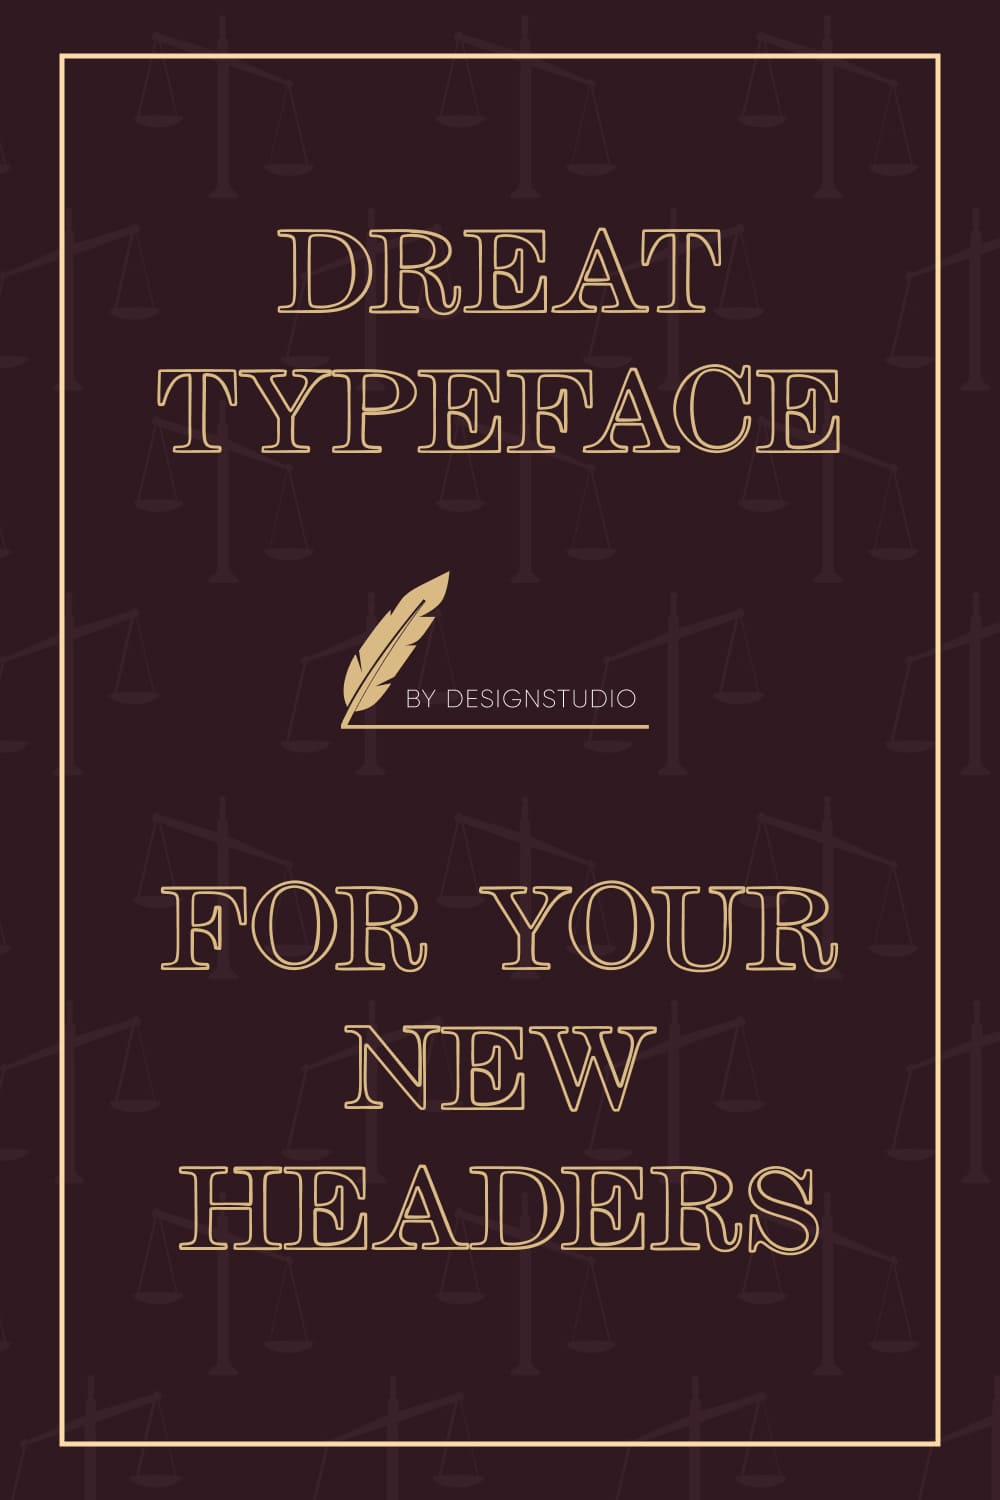 Meadow Handwriting Font Pinterest Preview.